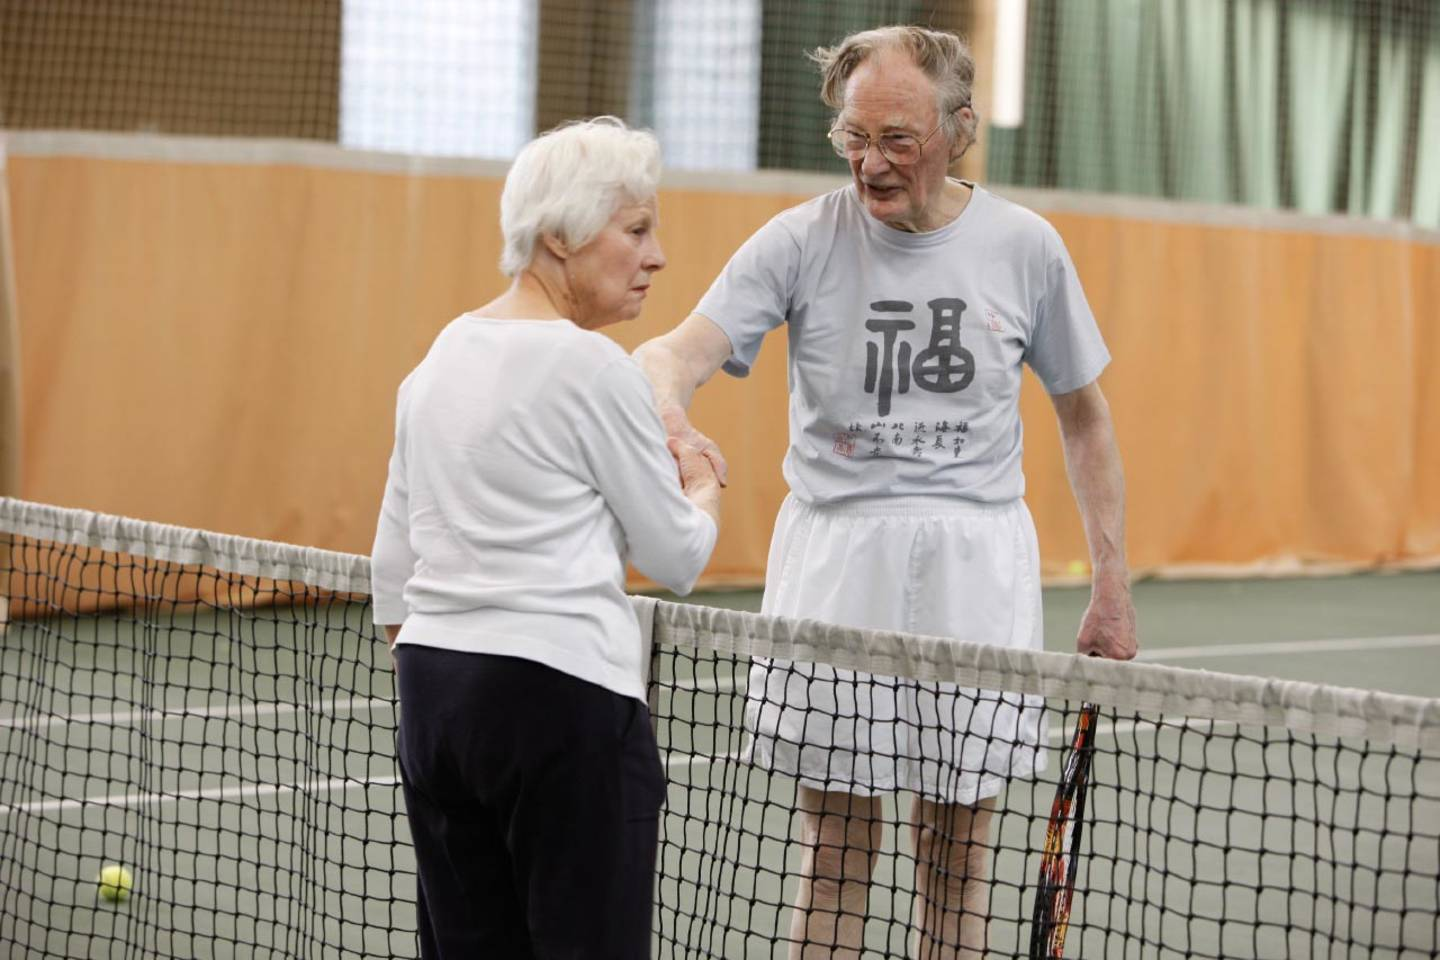 Older people playing tennis